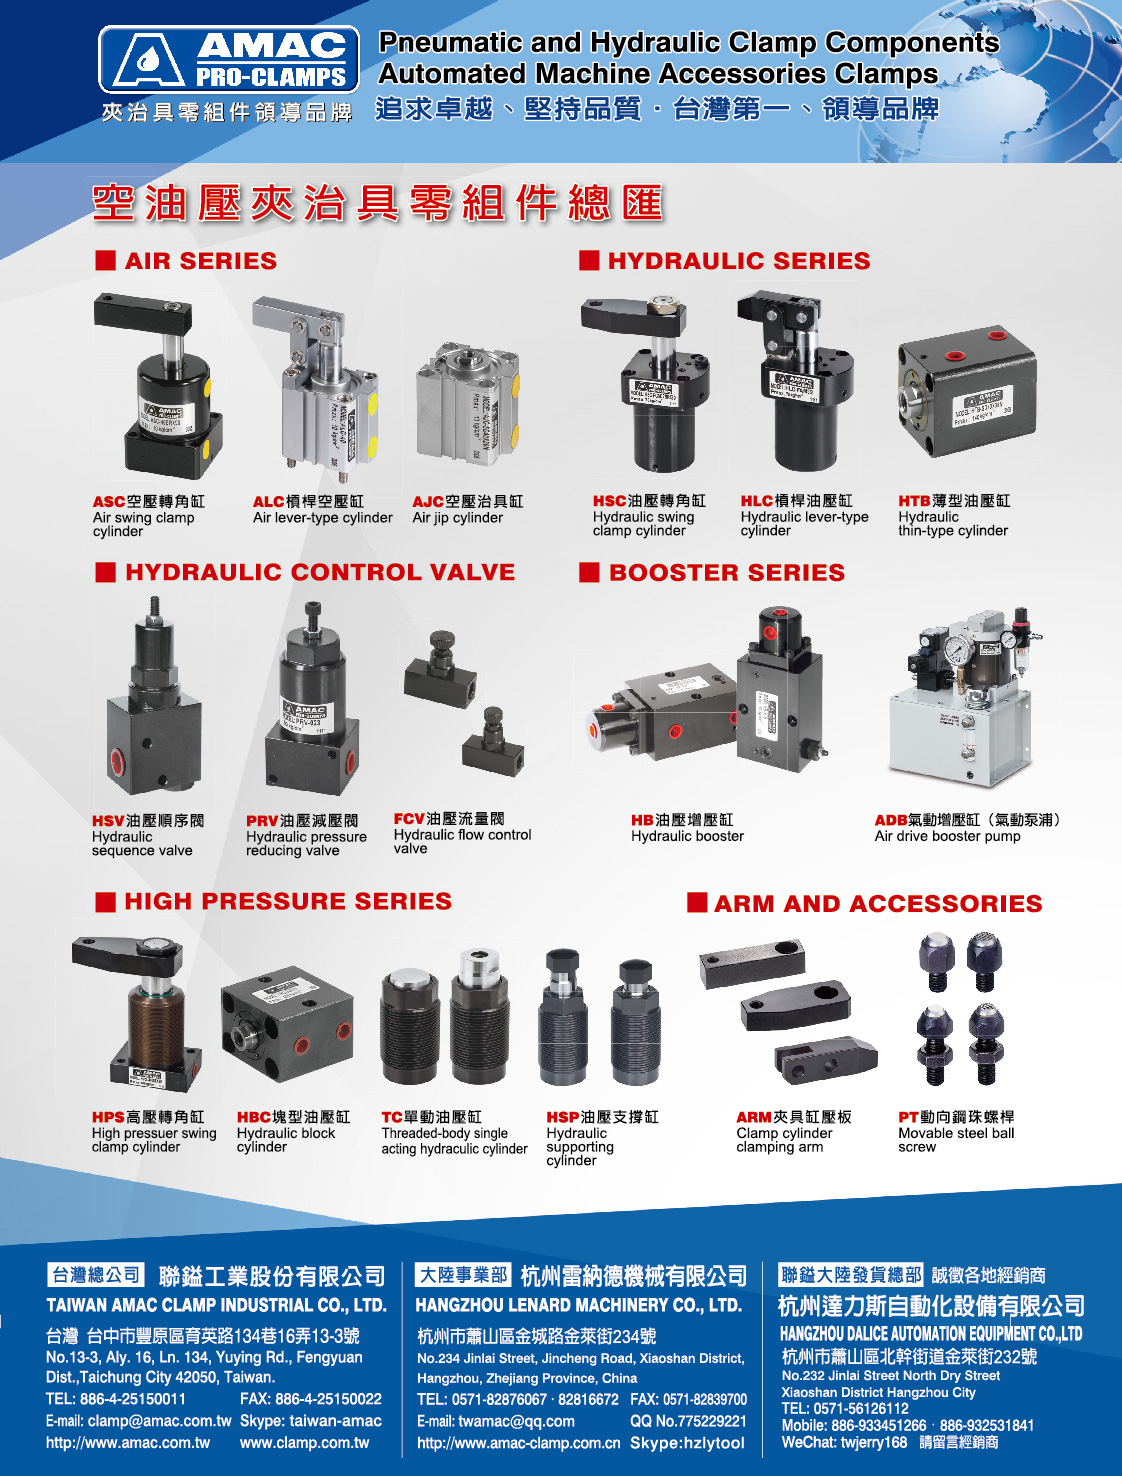 TAIWAN AMAC CLAMP INDUSTRIAL CO., LTD.